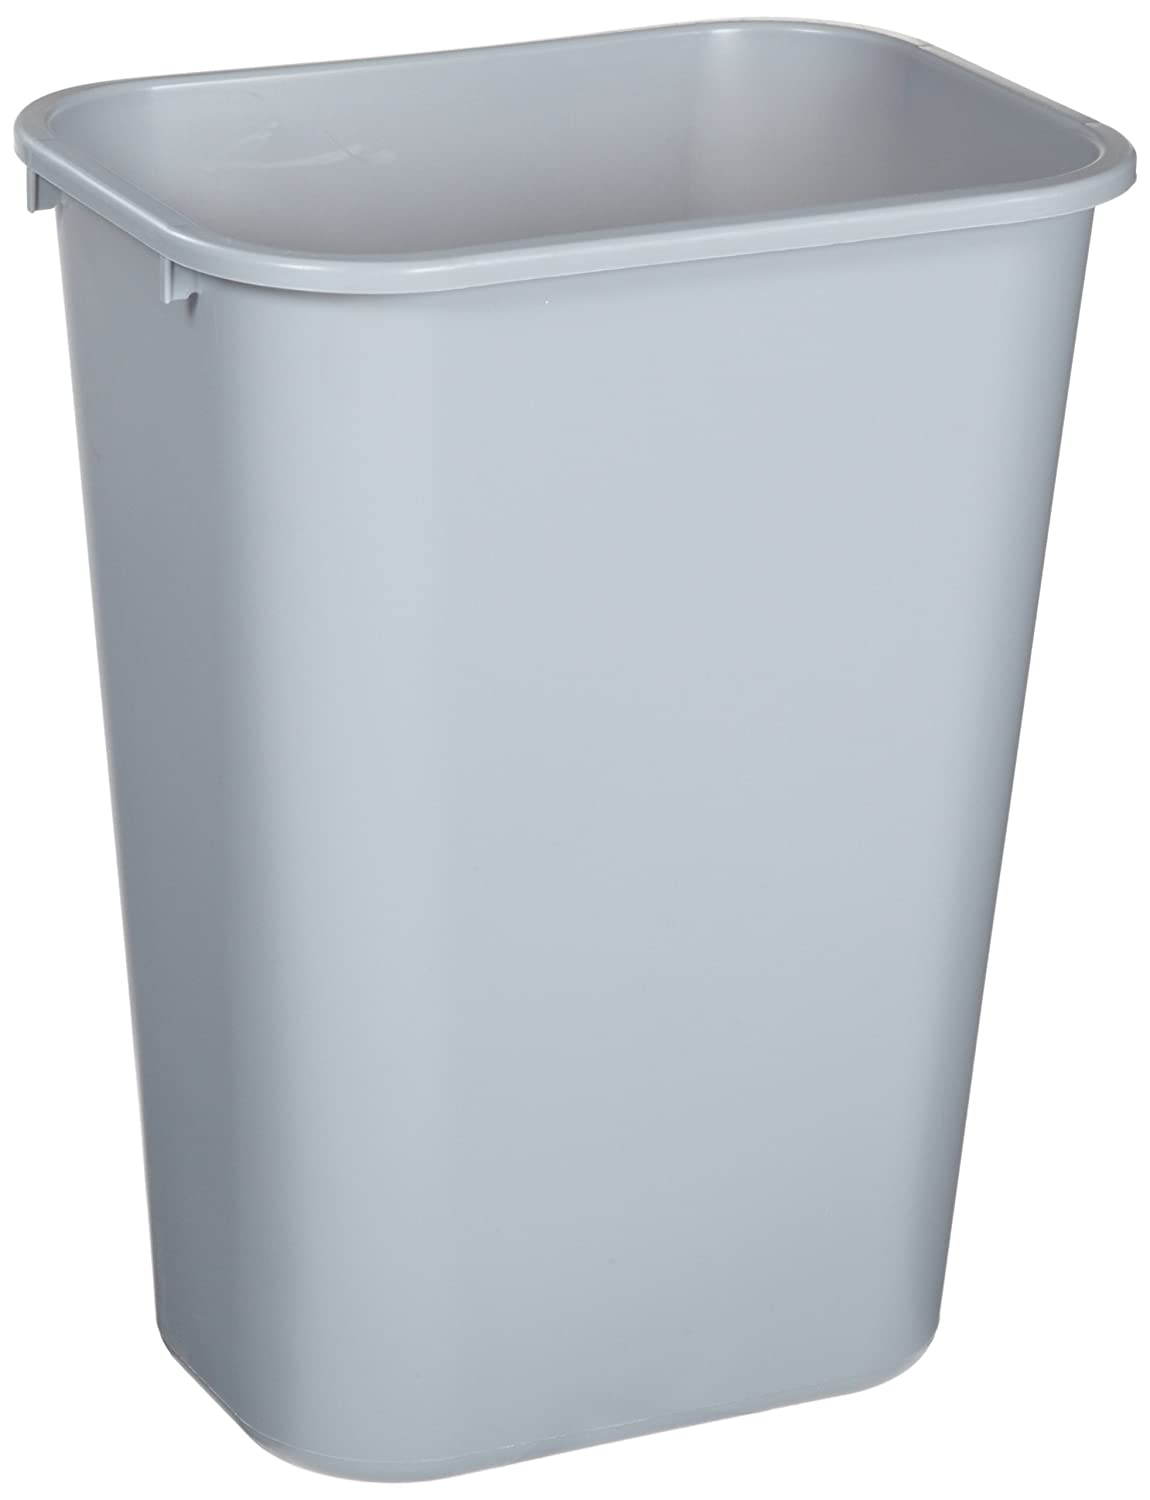 Rubbermaid Bathroom Wastebasket Plastic Trash Can Bin